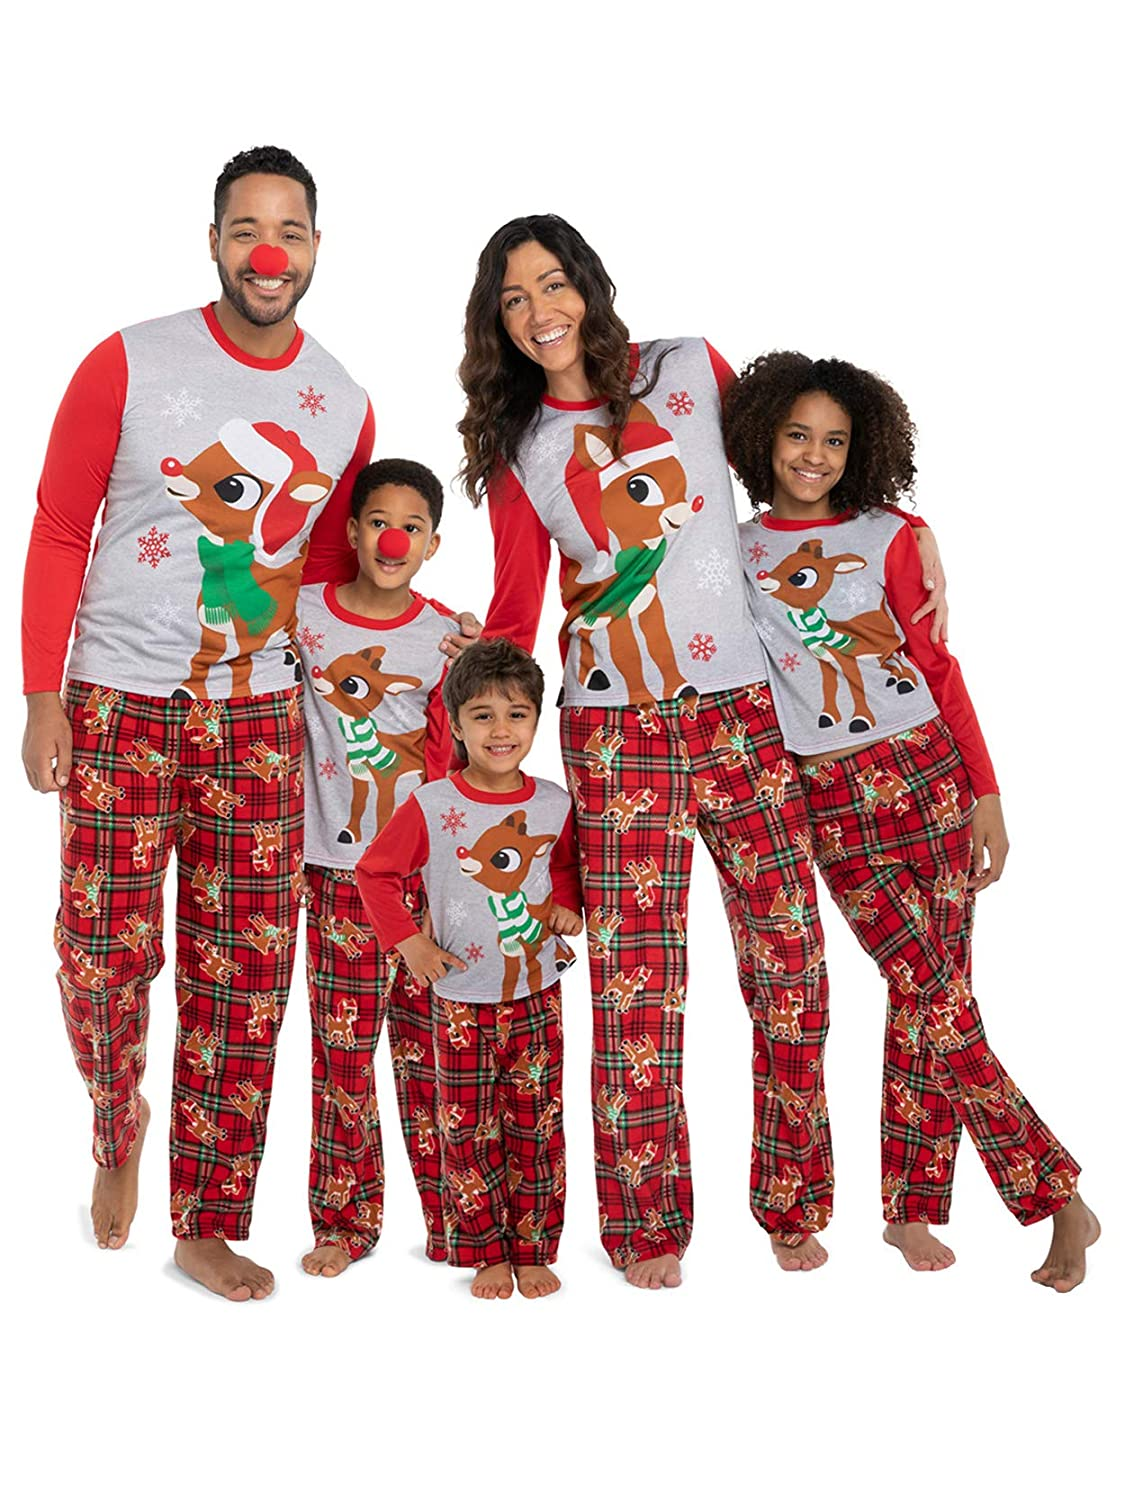 922b12dfd2 Amazon.com  Rudolph the Red Nosed Reindeer Christmas Holiday Family Sleepwear  Pajamas Dad Mom Kid Baby  Clothing